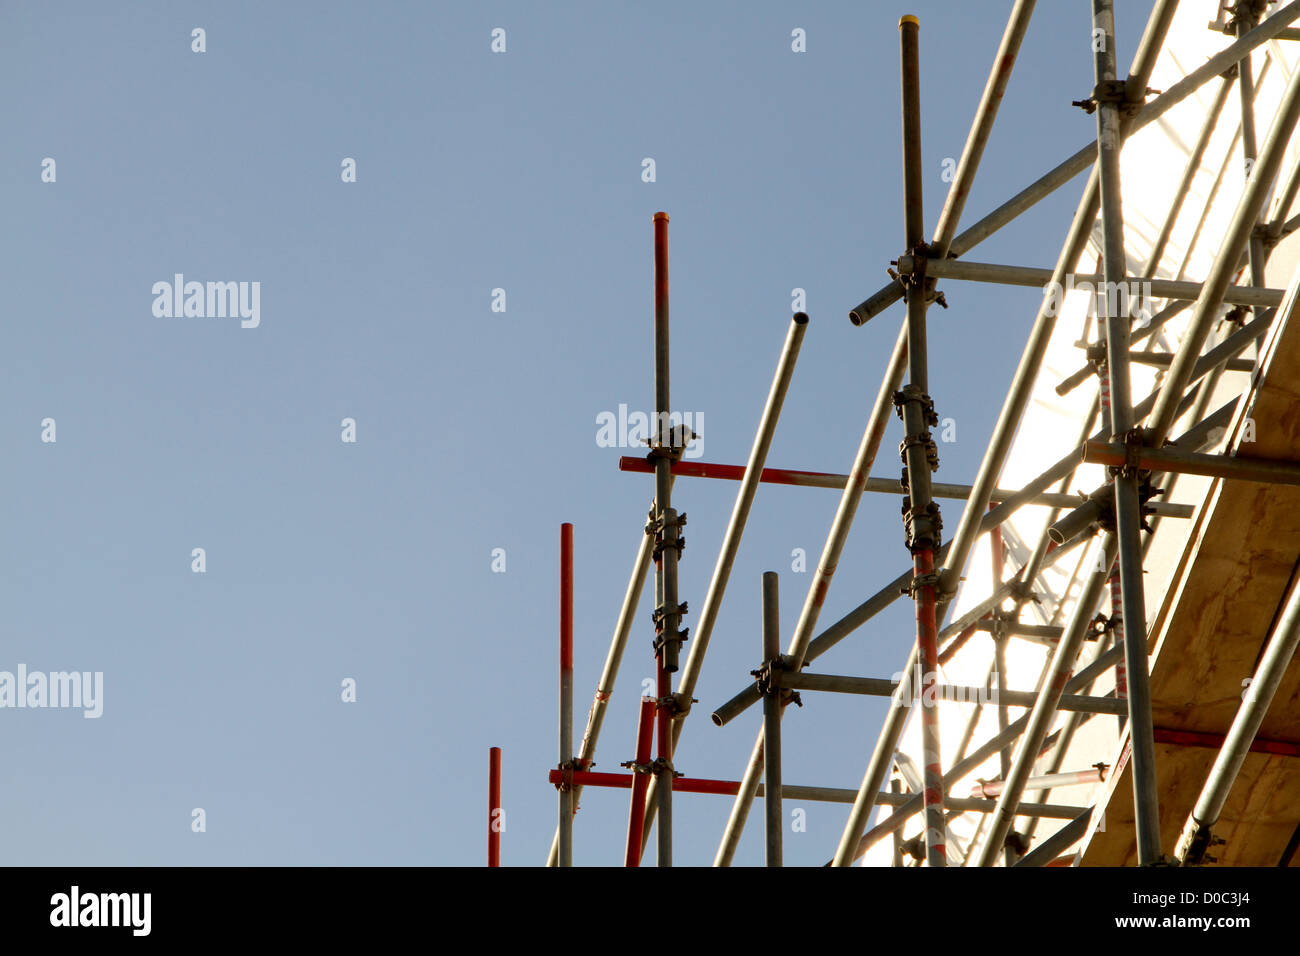 scaffolding against clear blue sky - Stock Image